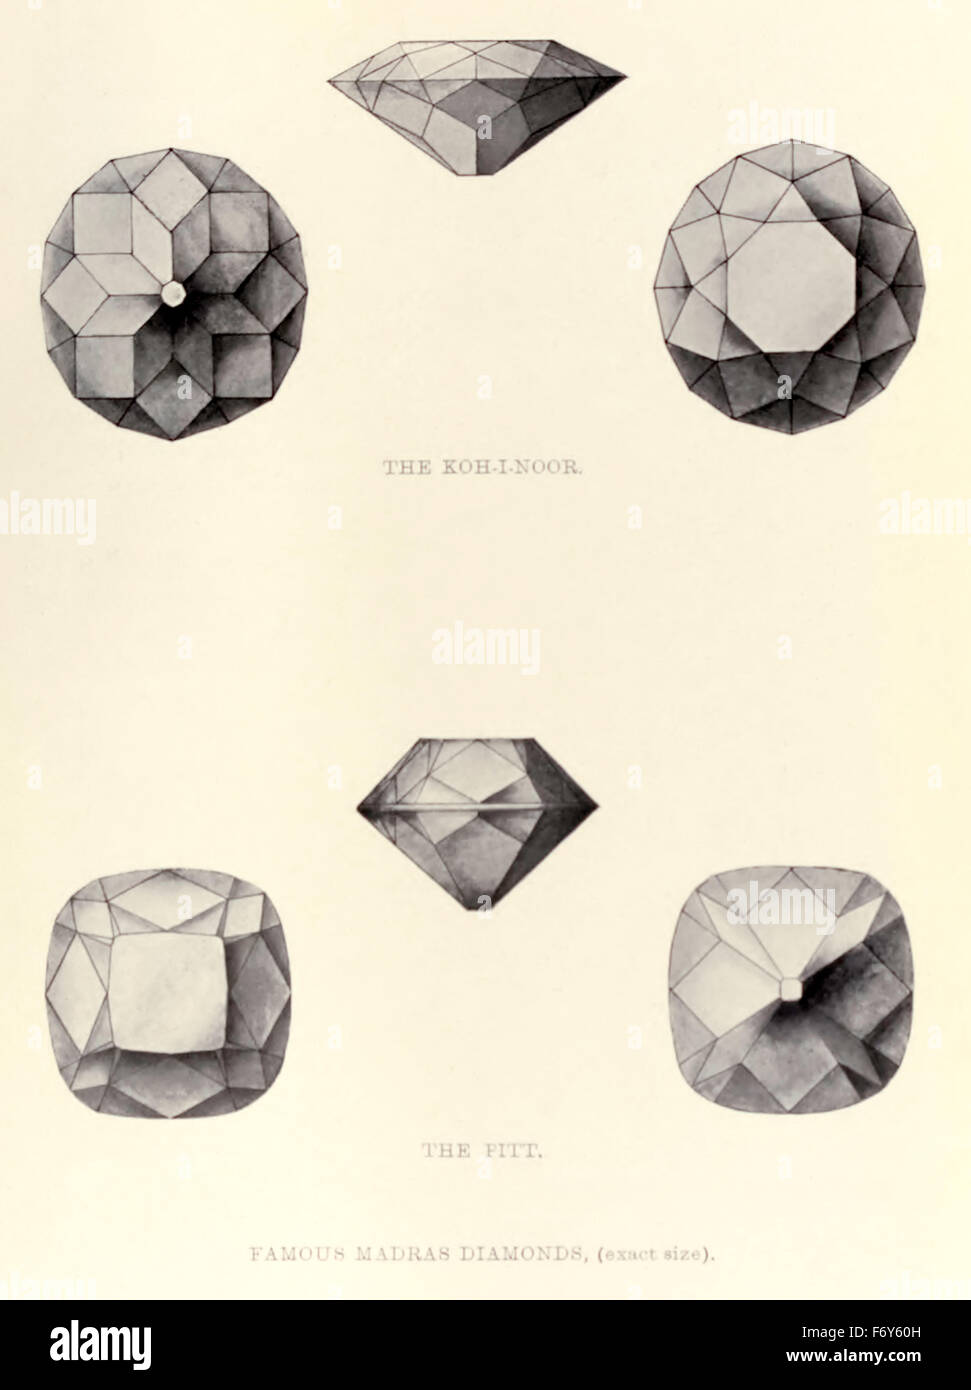 Drawings of 'The Koh-i-Noor' and 'The Pitt' Madras diamonds sketched by Dr Max Bauer from his book - Stock Image